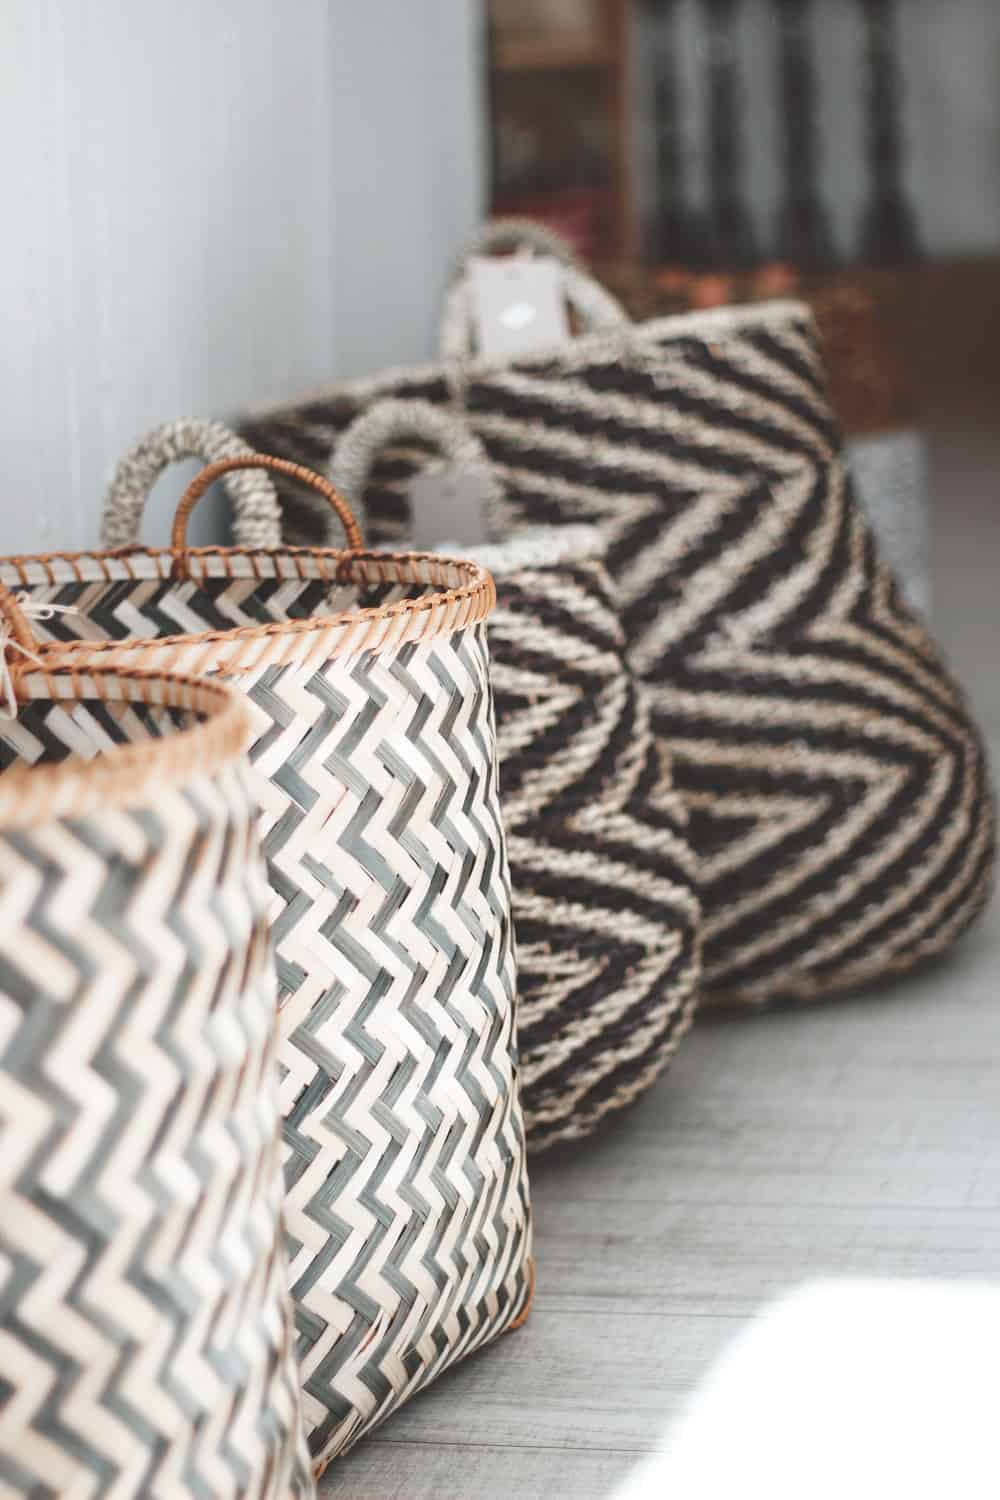 baskets - great storage maximizer